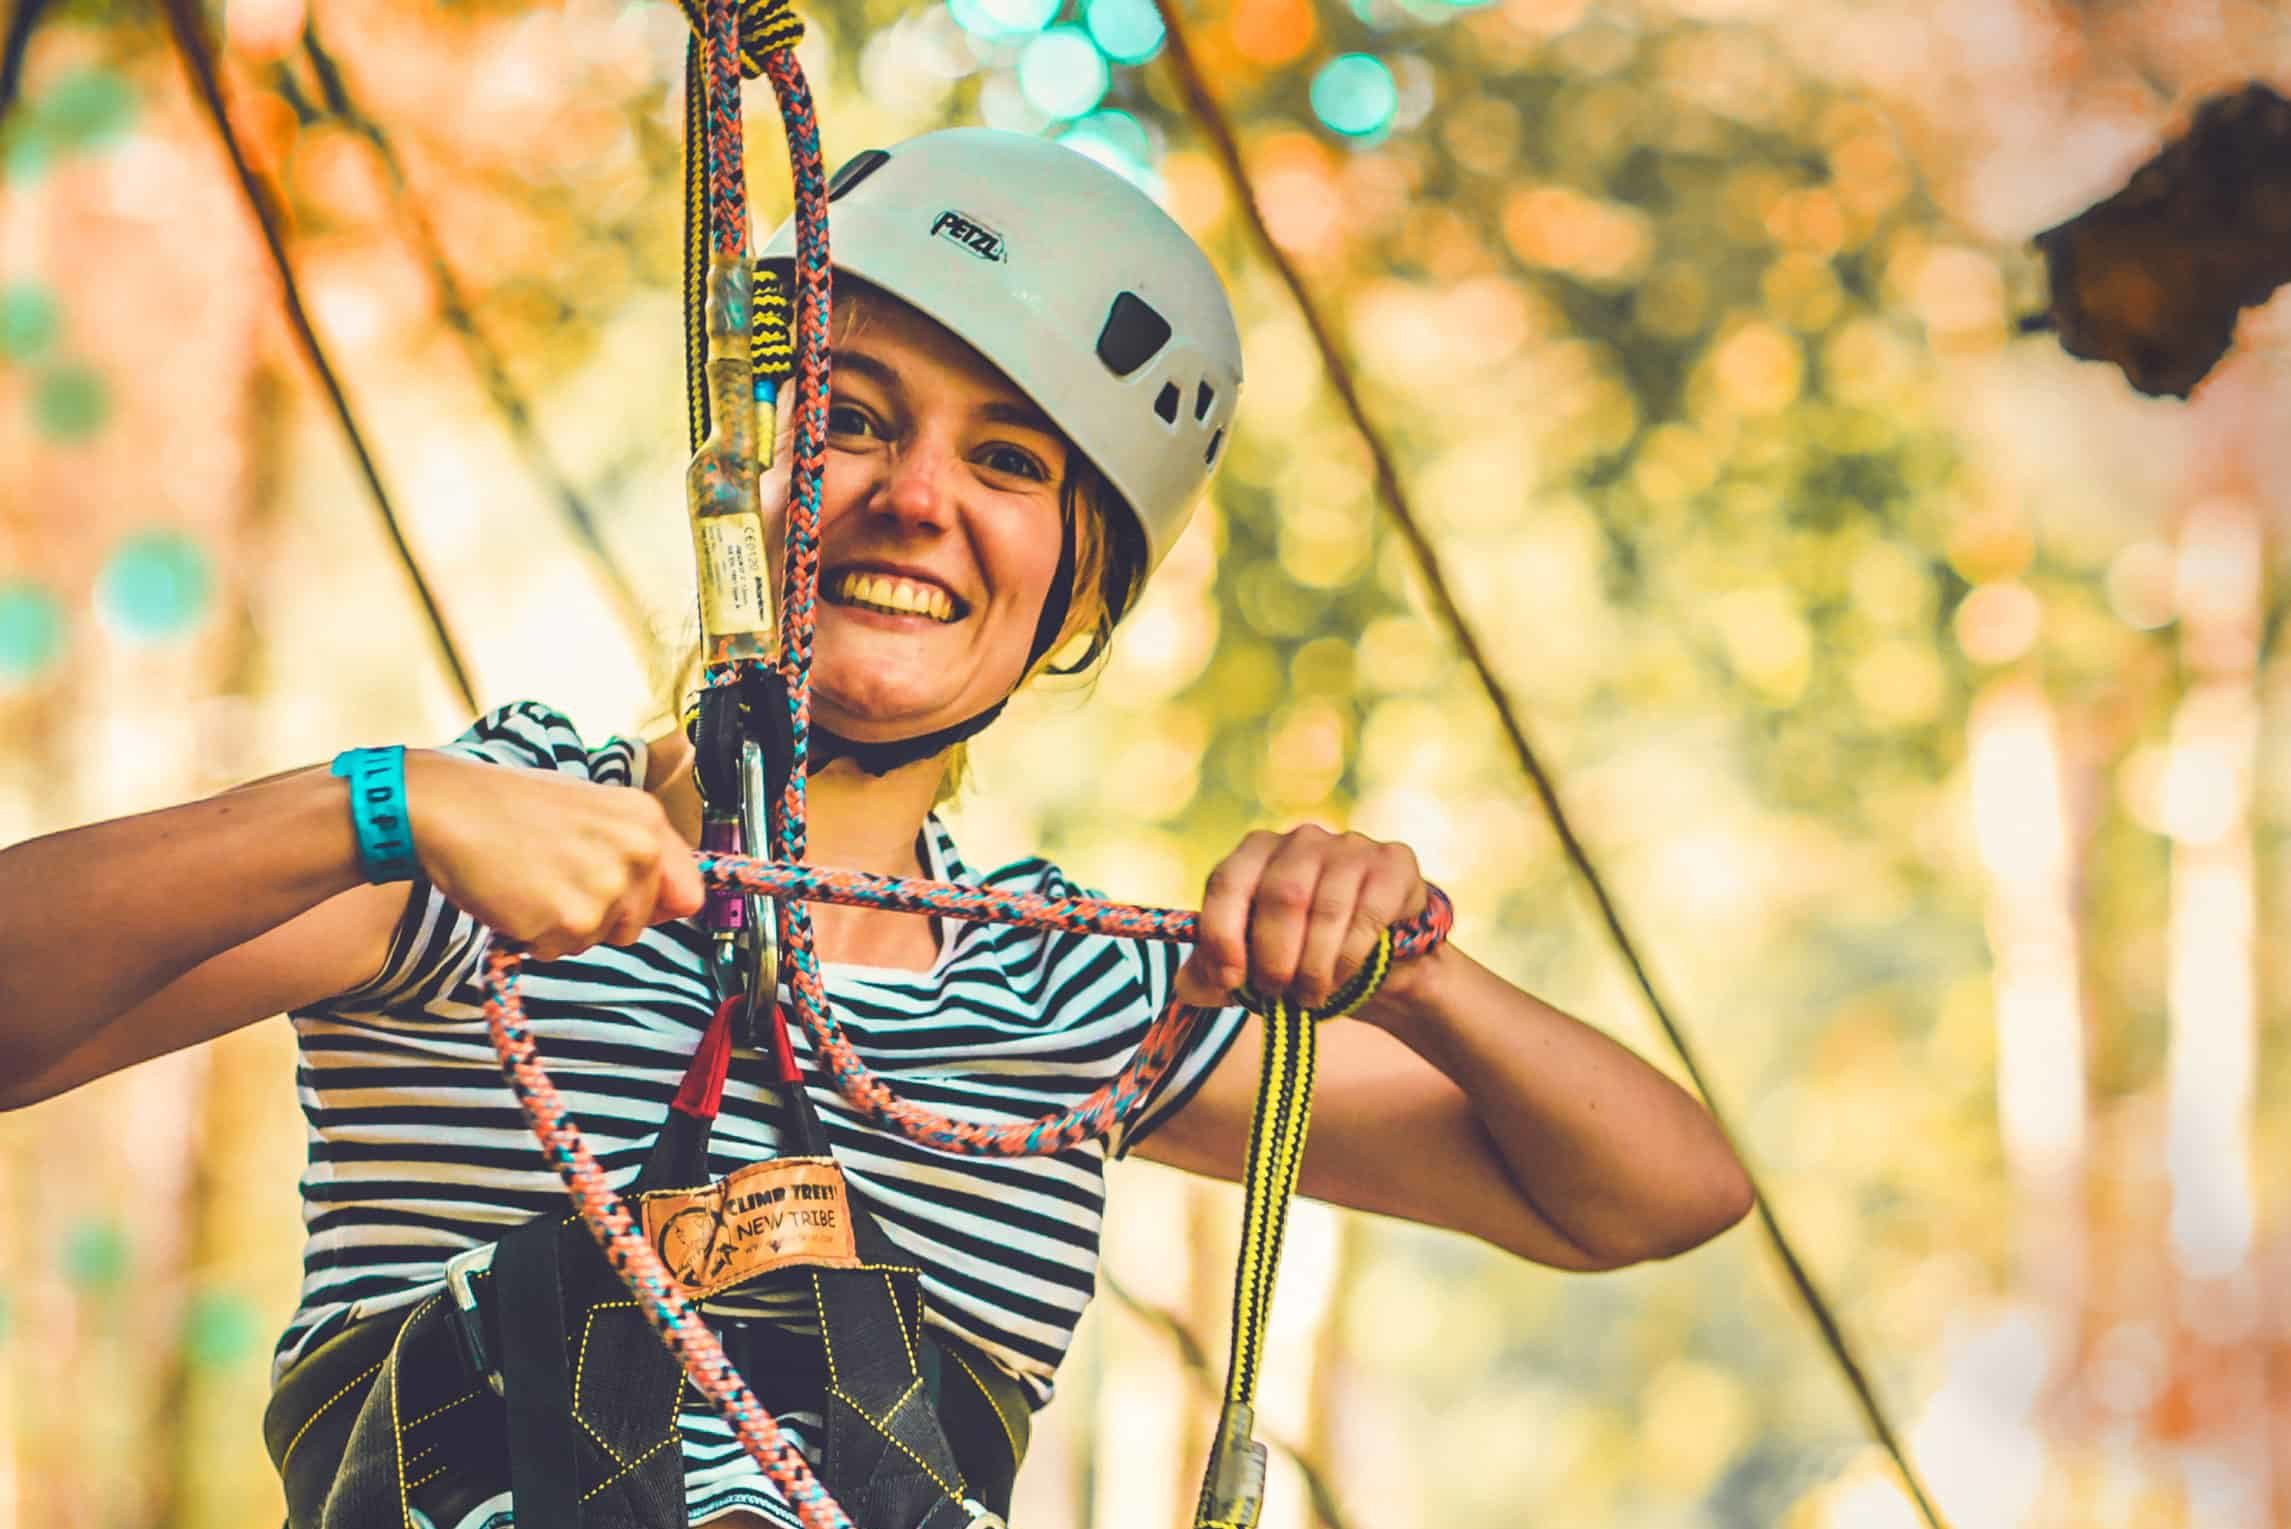 Girl with helmet and ropes on ready to go tree climbing at Camp Wildfire. The UK's Best Alternative Festival. UK's Top Unique Event. A summer weekend break in a forest near London and Kent. An outdoor woodland retreat featuring adventure activities, live music, DJs, parties and camping. Half summer adventure activity camp, half music festival, for adults only.